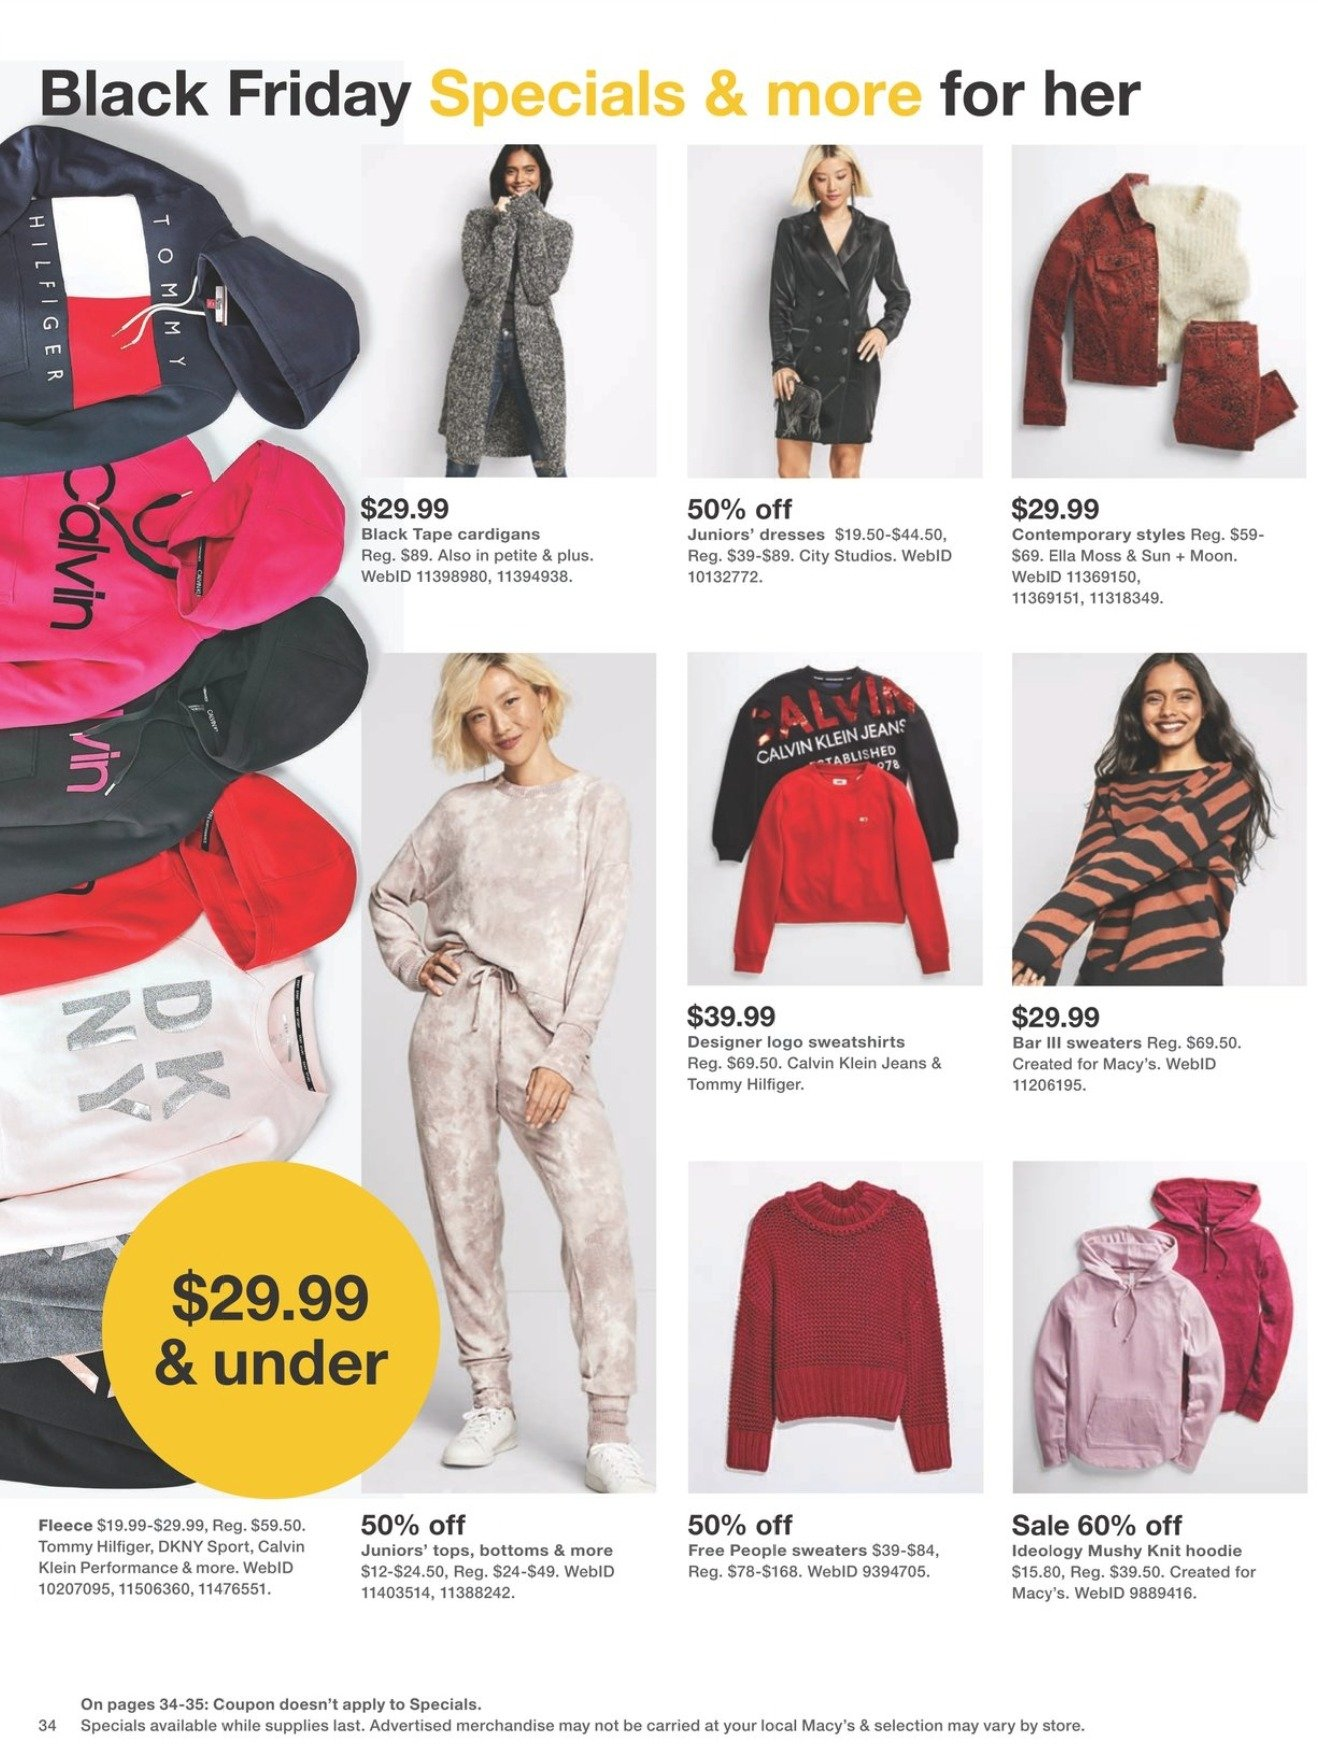 Macy's Black Friday 2020 Page 34